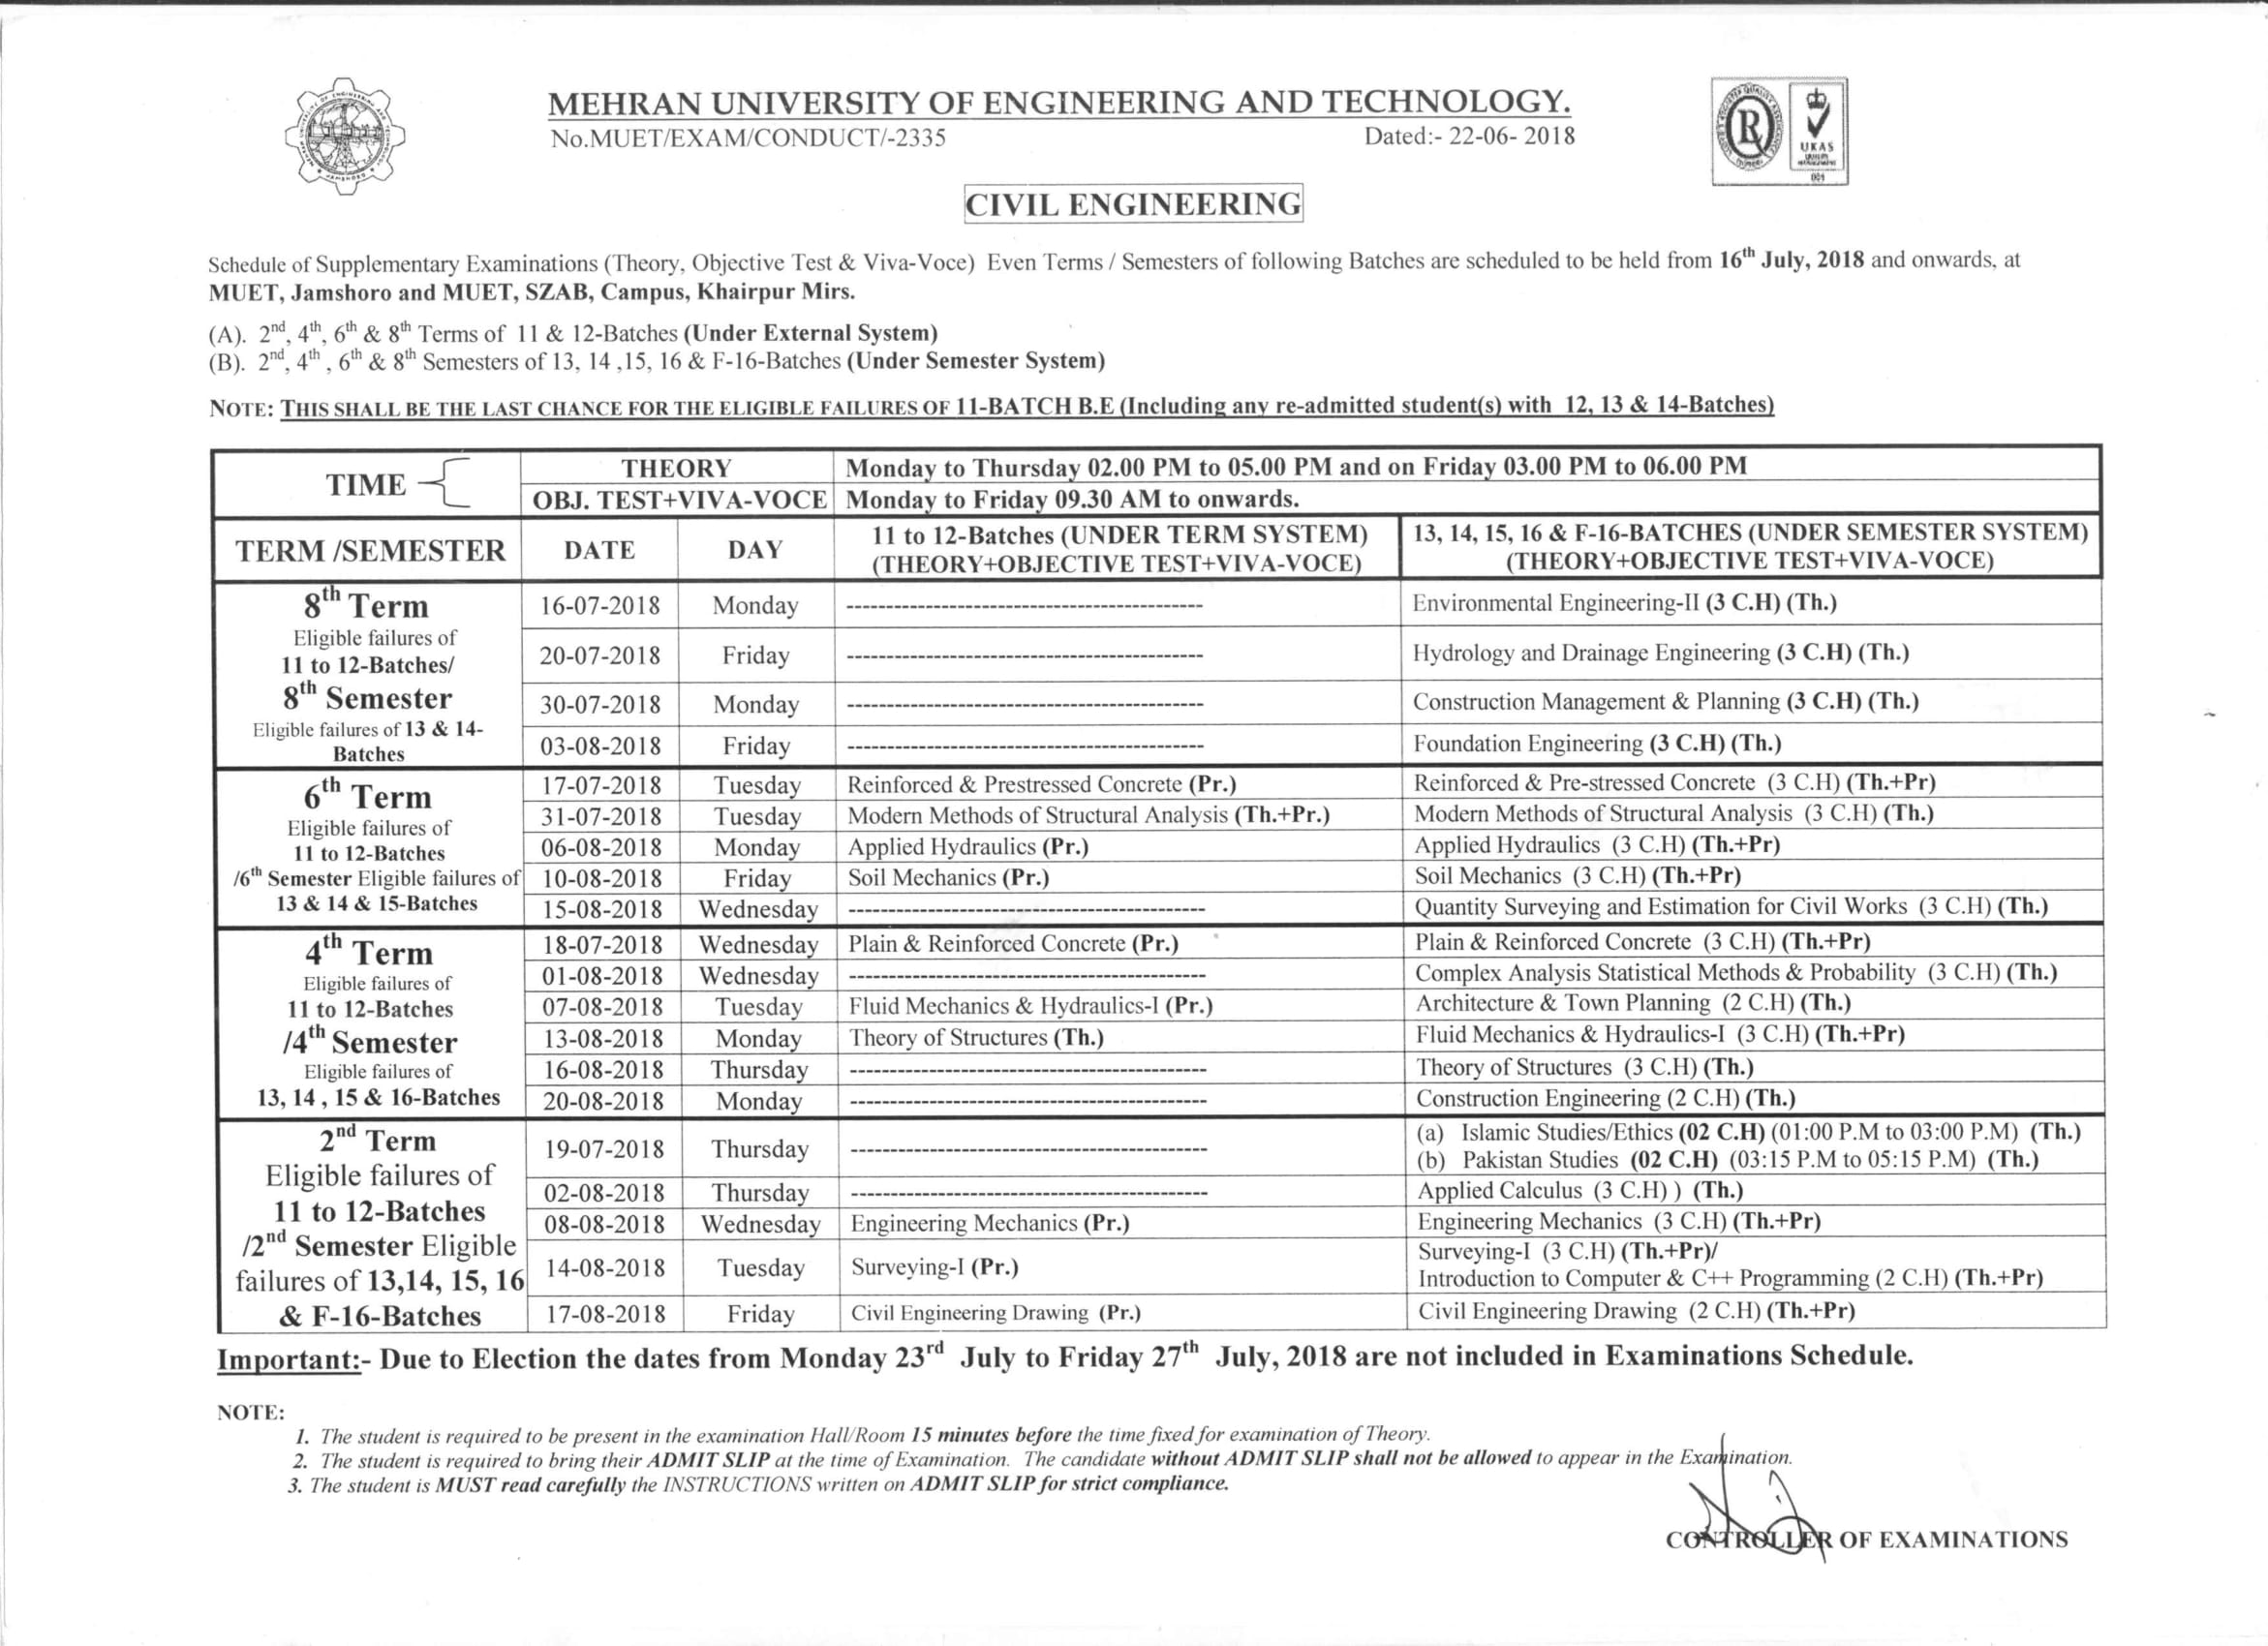 Schedule of Supplementary Examination to be held from 16th July